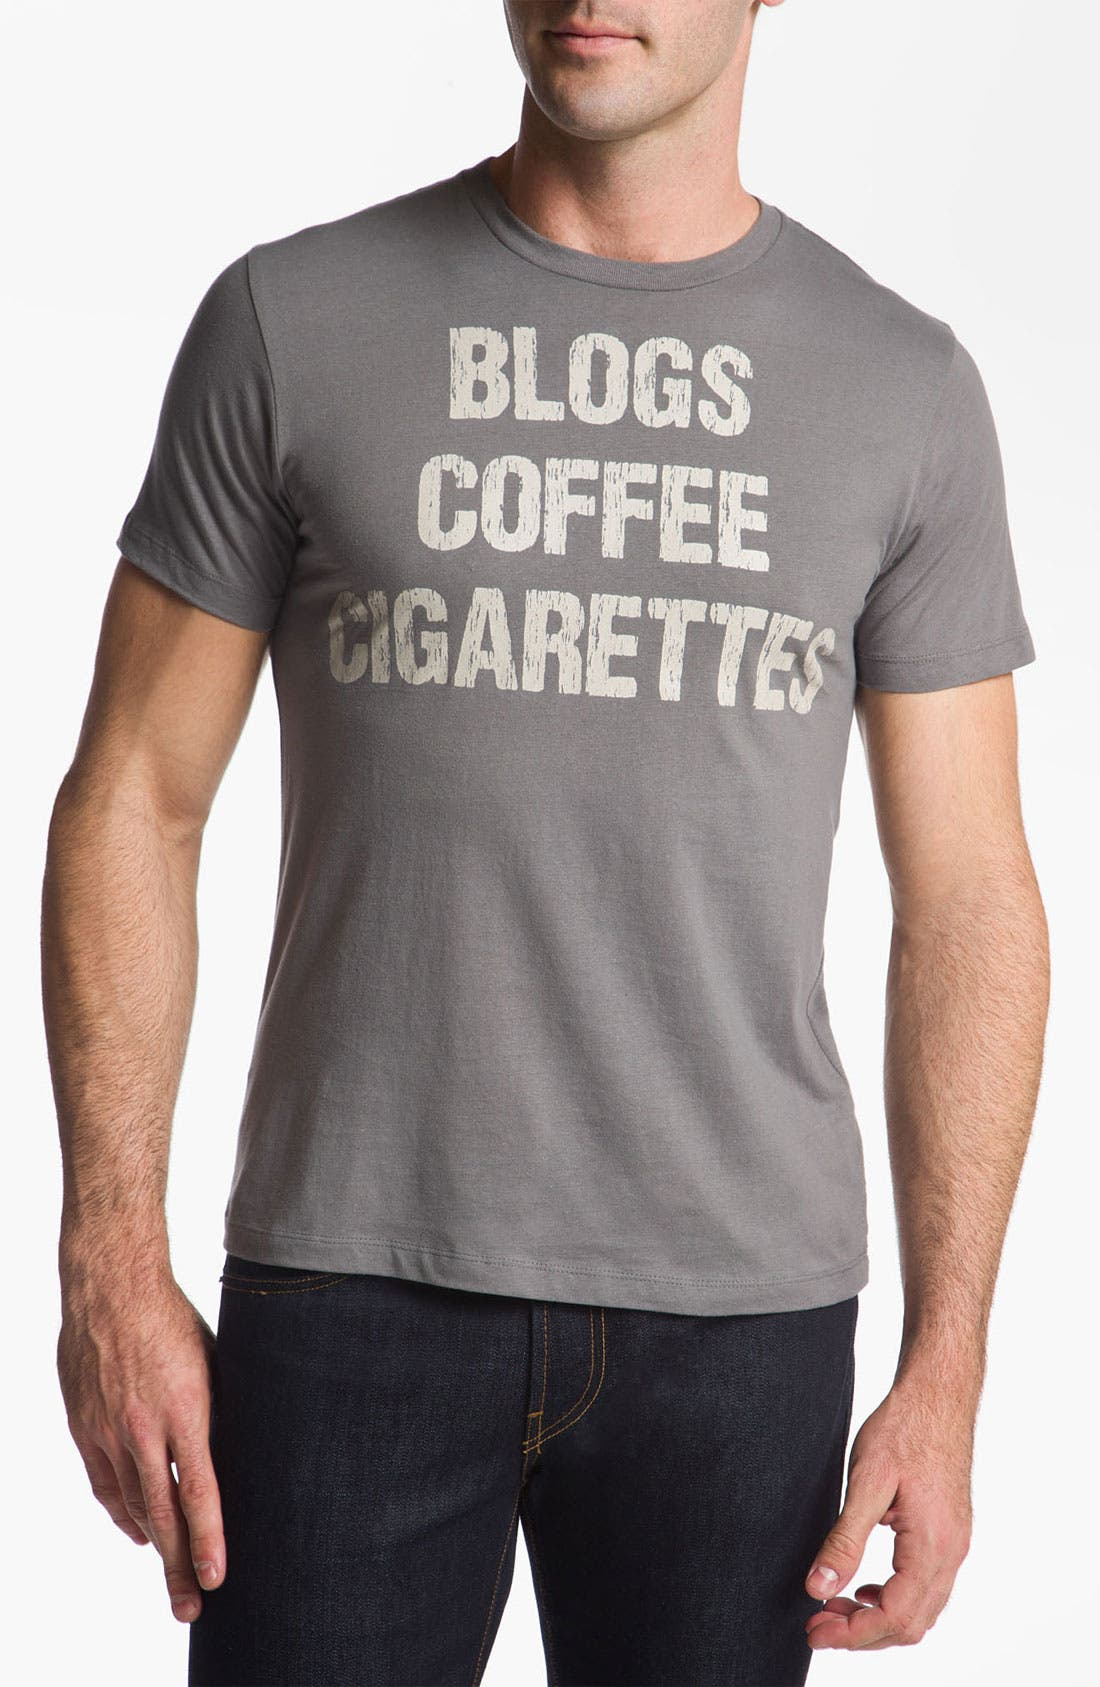 Alternate Image 1 Selected - Topless 'Blogs' T-Shirt